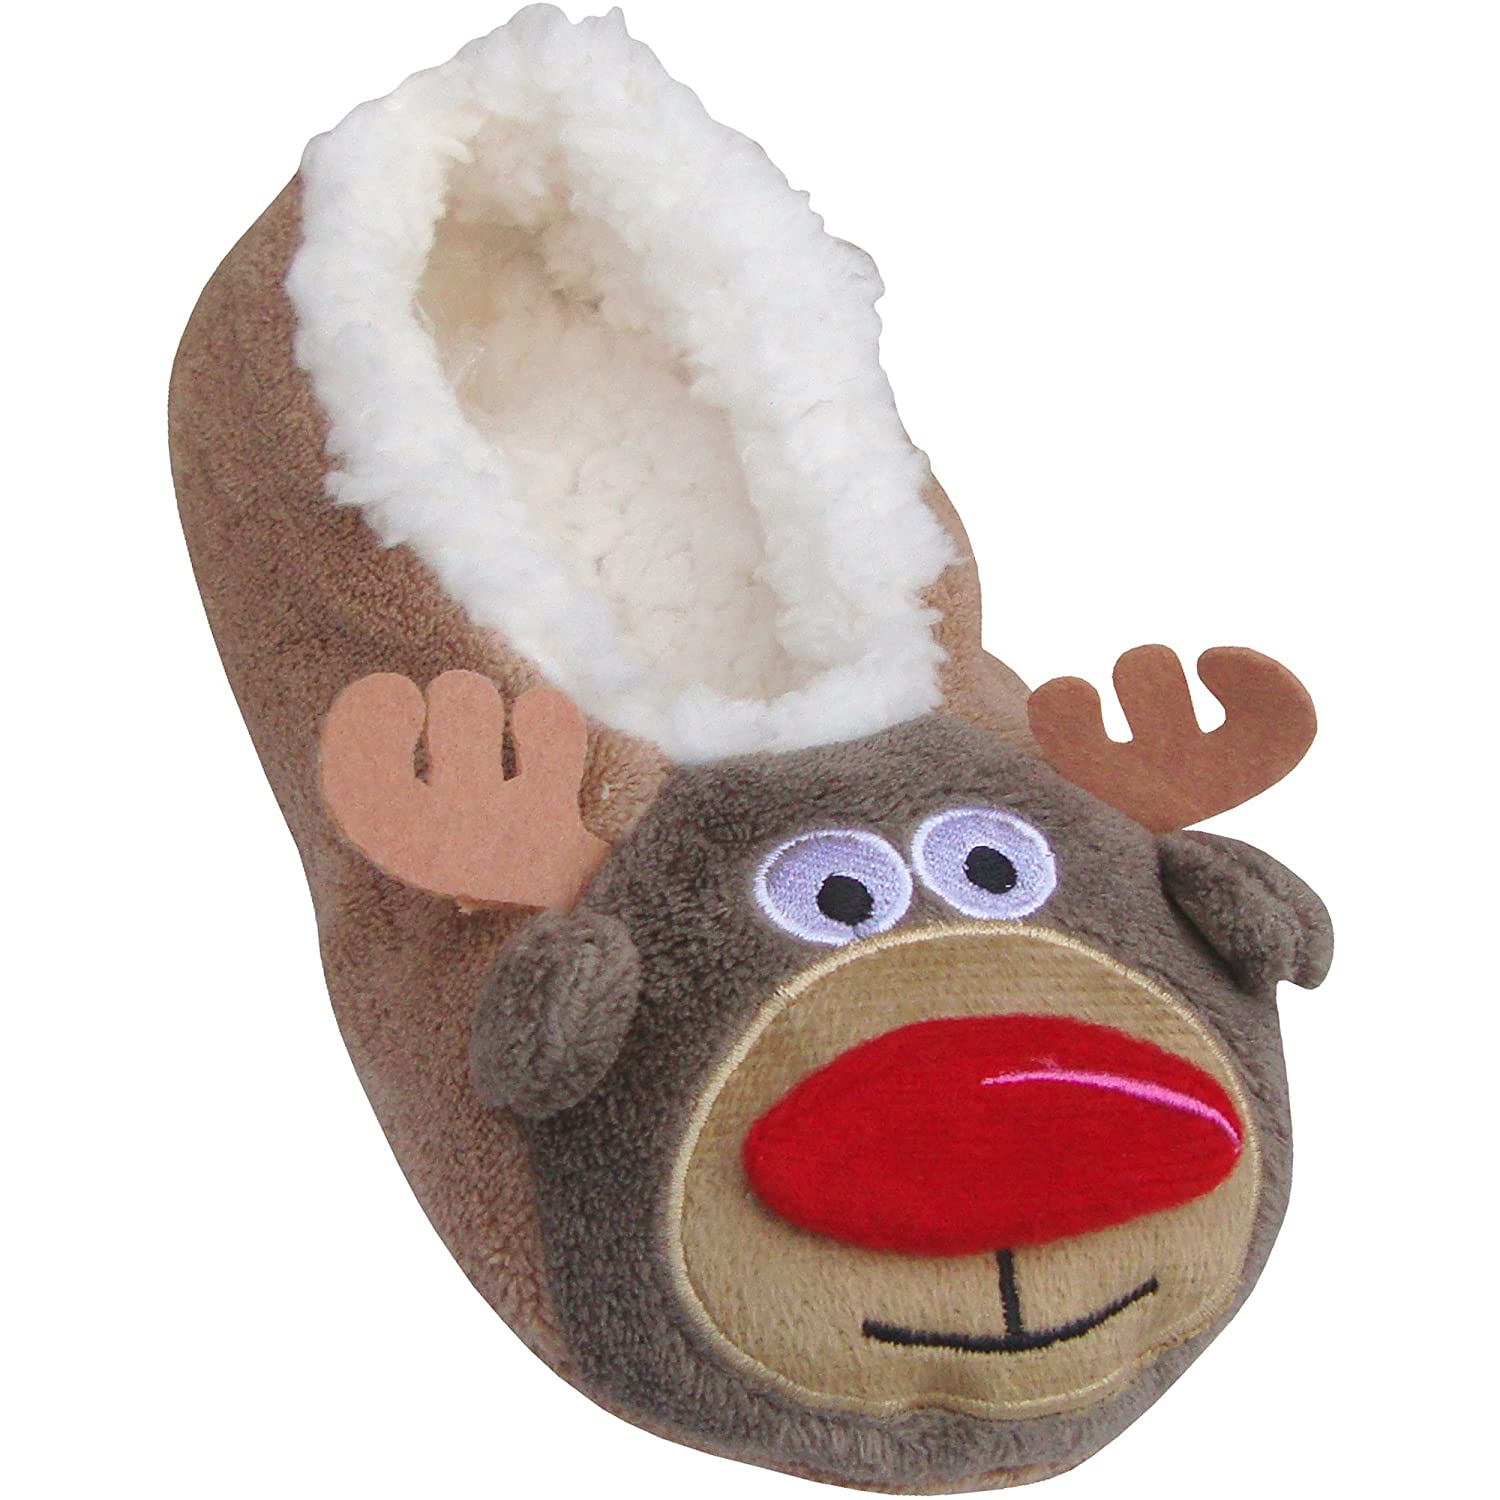 Children'S Fluffy Thermal Novelty Festive Christmas Slippers FU_1138